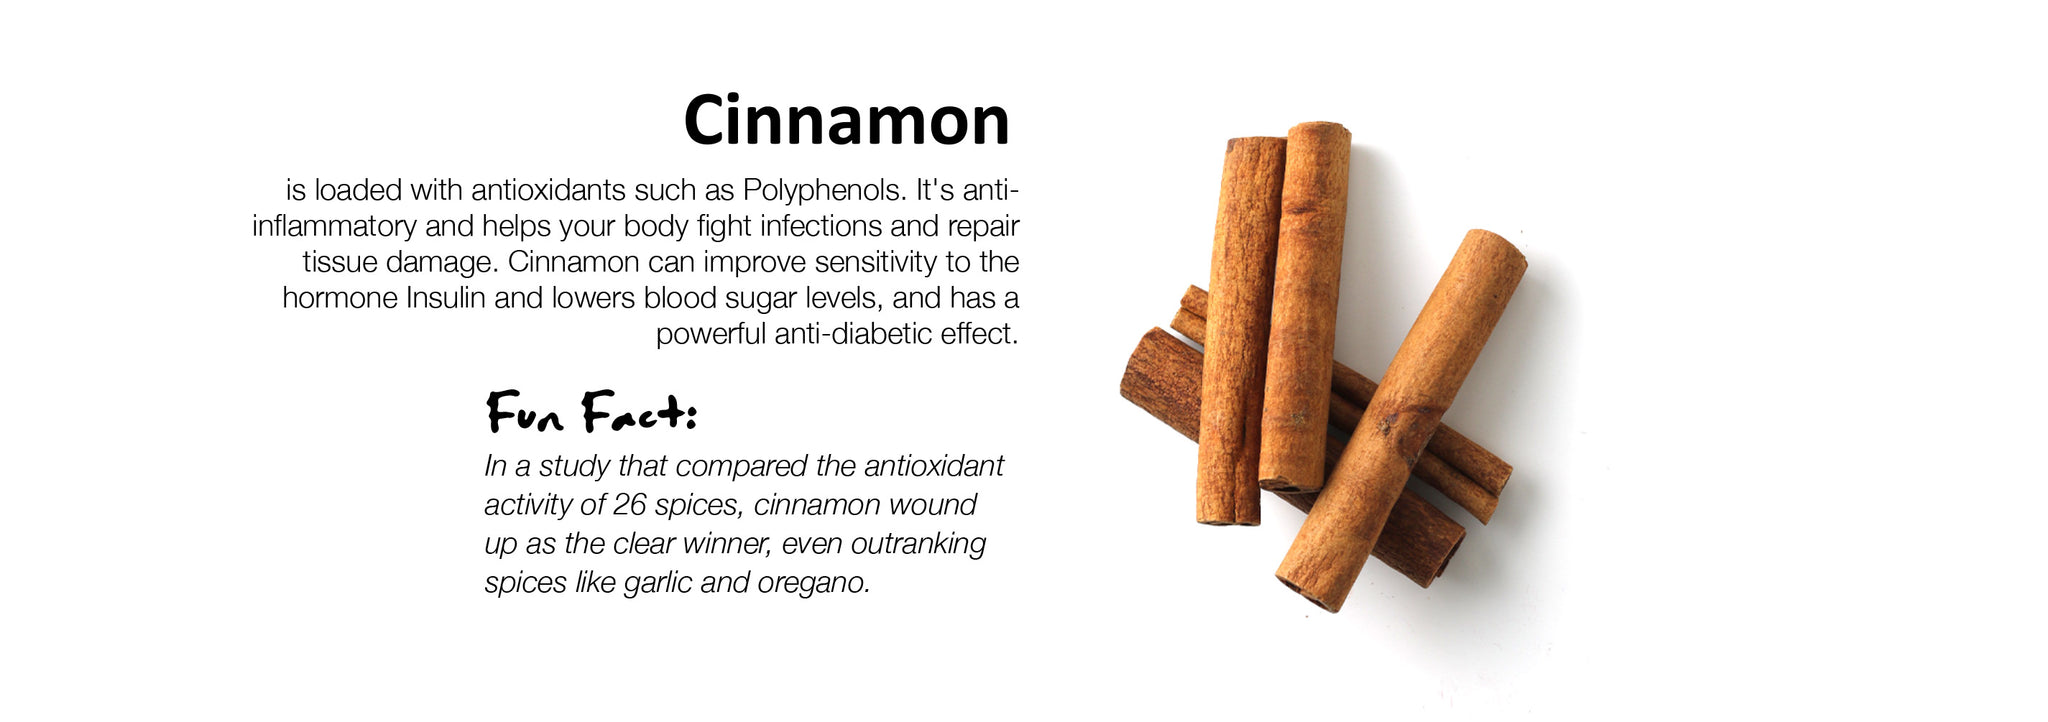 Cinnamon is loaded with antioxidants such as Polyphenols. It's anti-inflammatory and helps your body fight infections and repair tissue damage. Cinnamon can improve sensitivity to the hormone Insulin and lowers blood sugar levels, and has a powerful anti-diabetic effect.